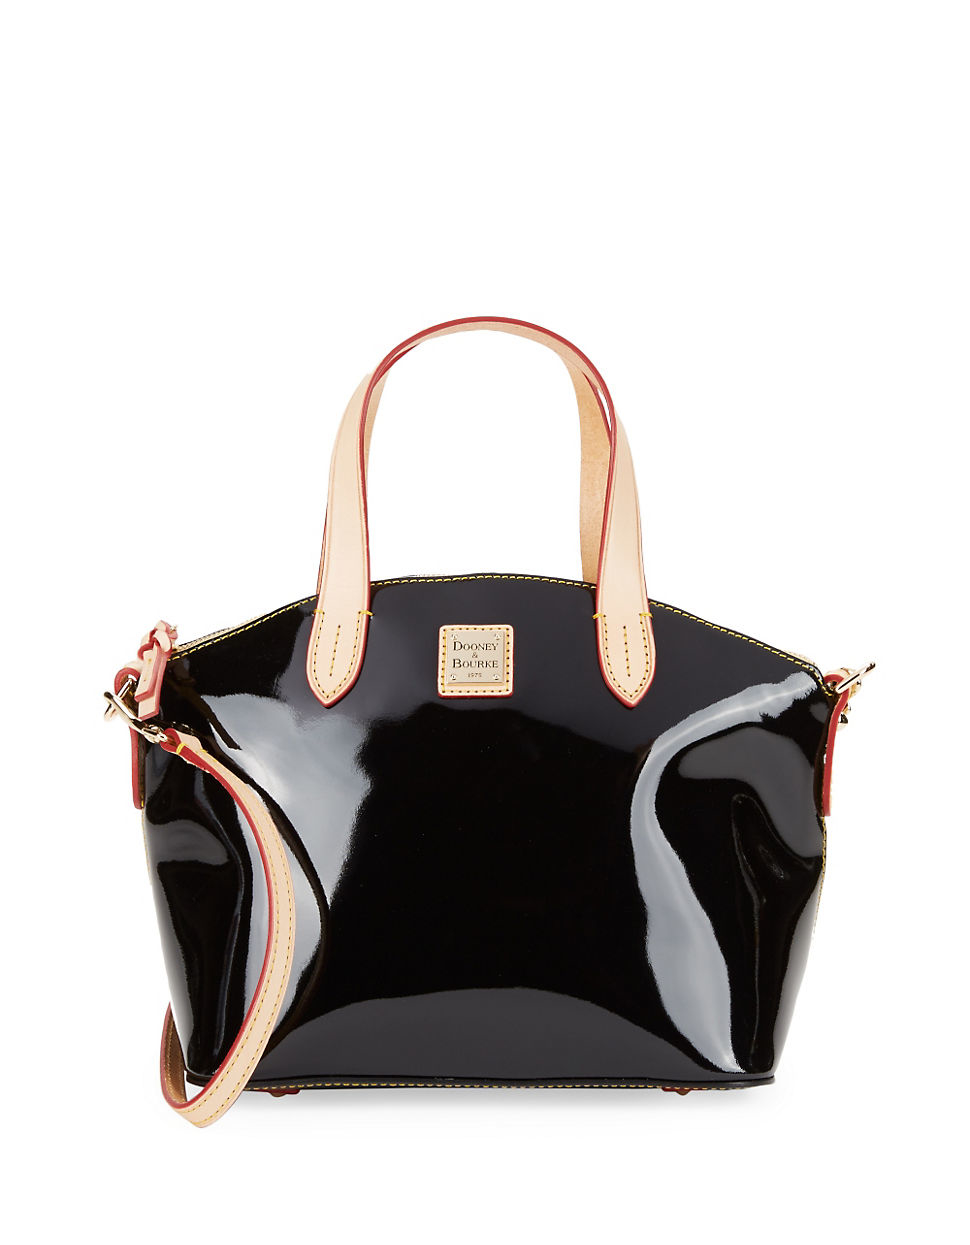 369666a3441 Lyst - Dooney & Bourke Patent Leather Small Satchel in Black